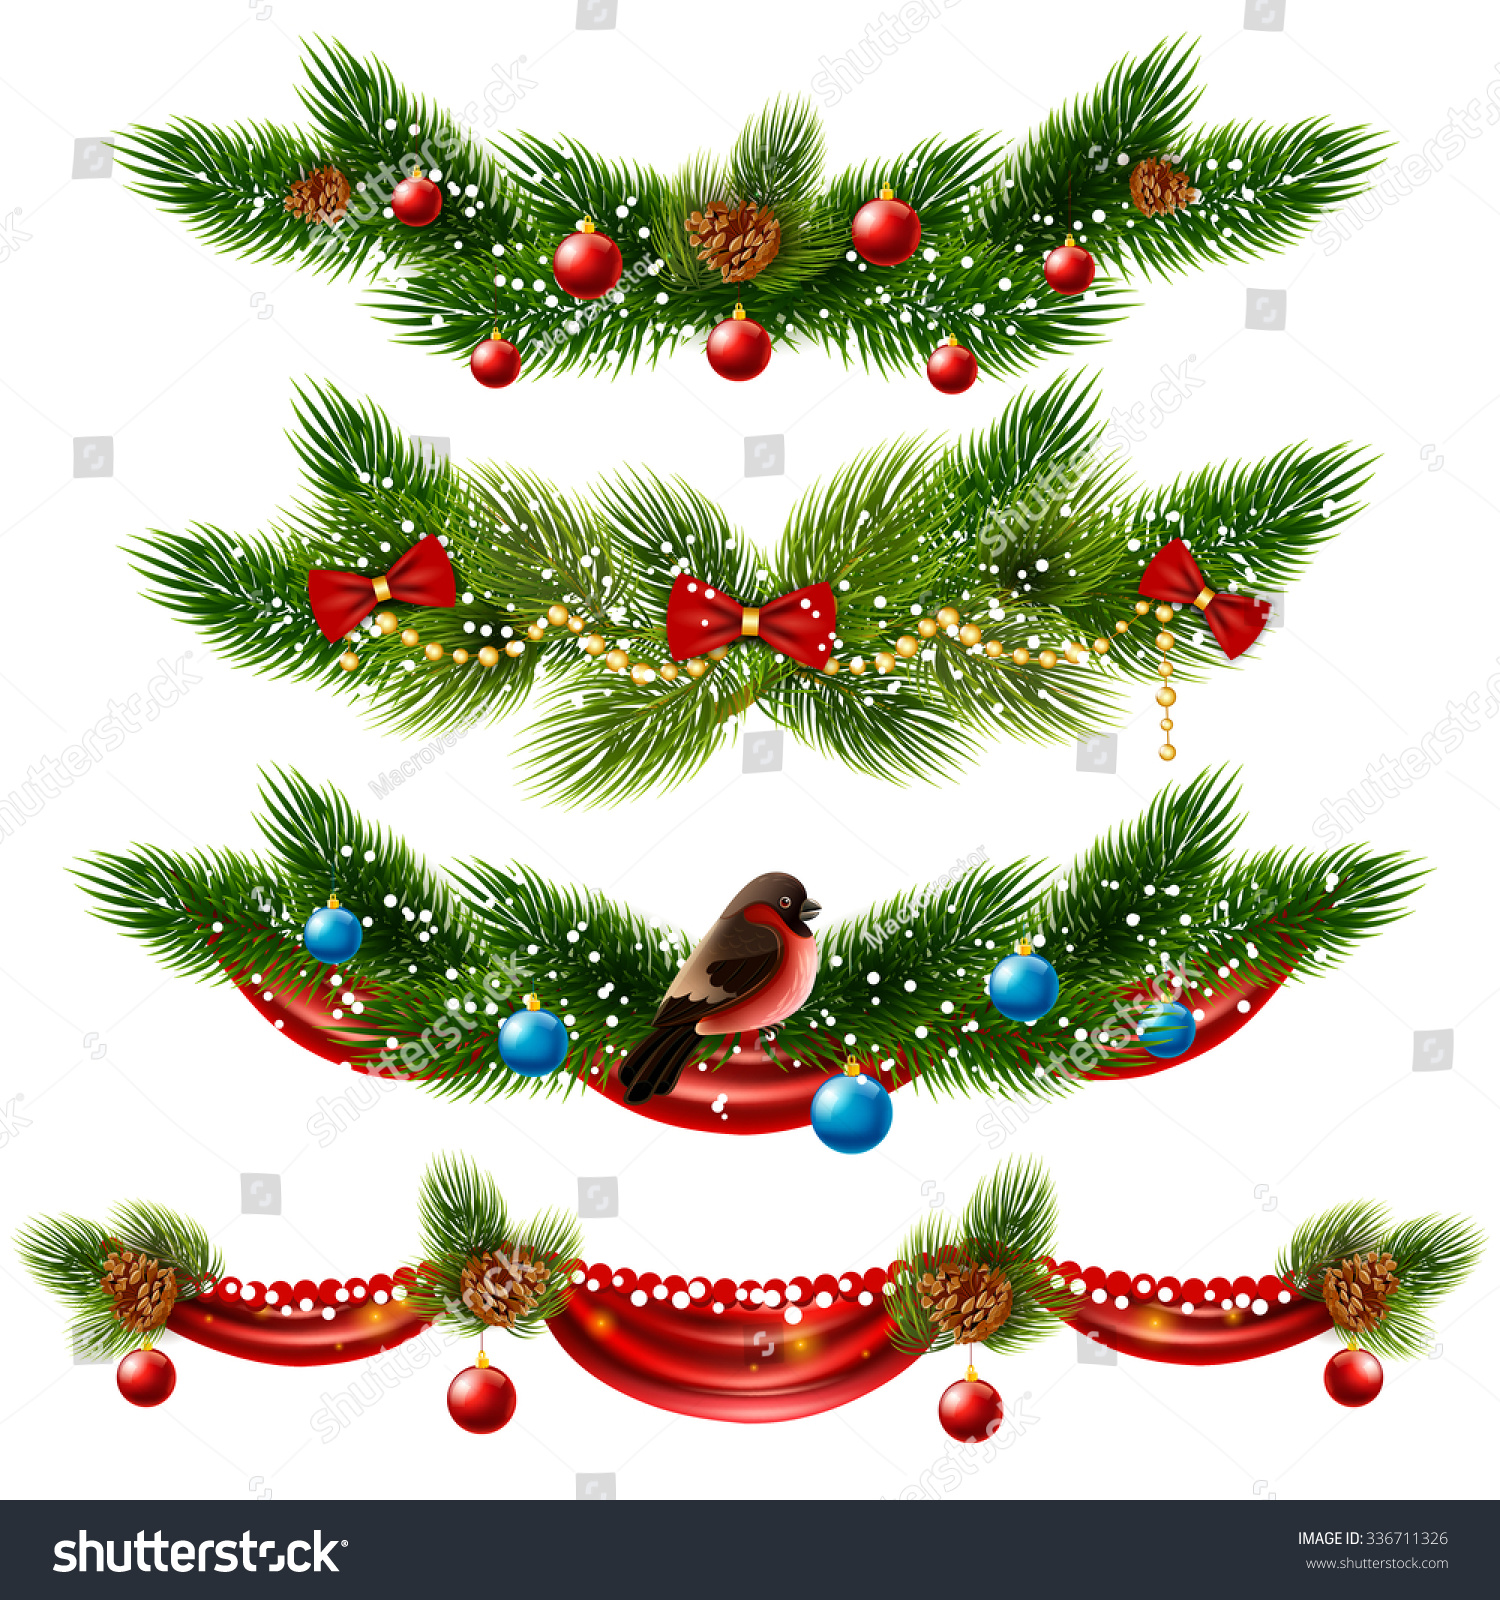 Christmas decorations borders - Christmas Realistic Borders Set With Pine Tree And Decorations Isolated Vector Illustration